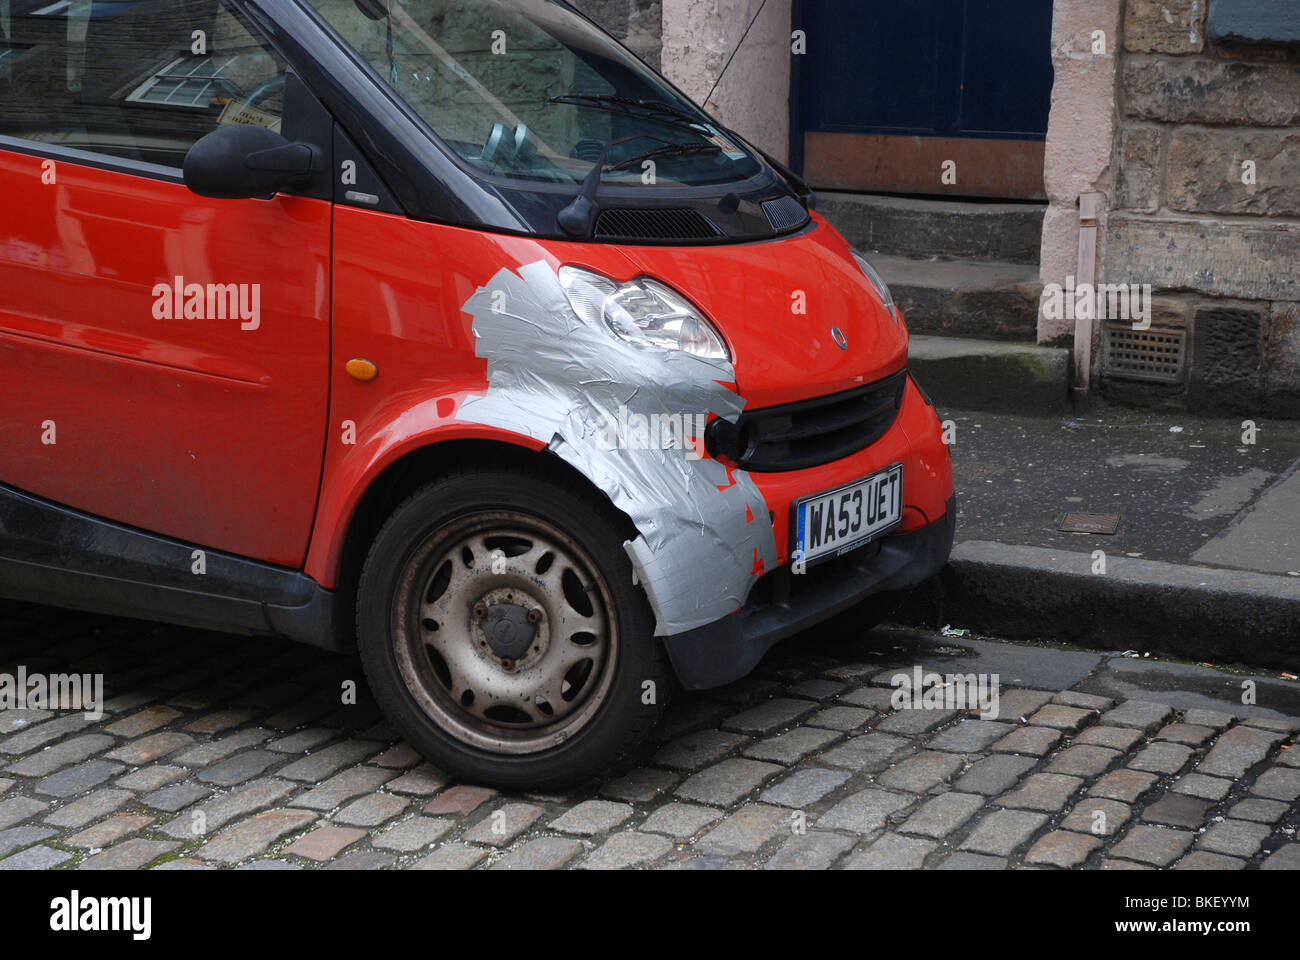 Smart car parked on a cobbled street with some damage temporarily repaired with silver tape. - Stock Image